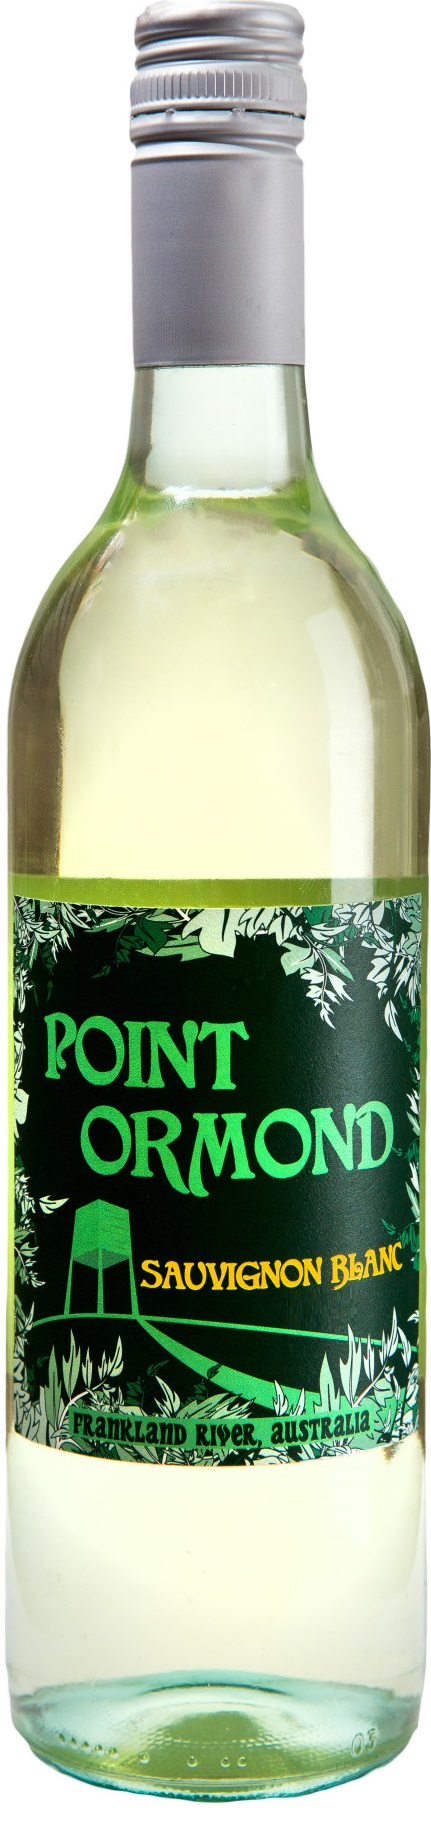 Point Ormond Sauvignon Blanc 2019 750ml